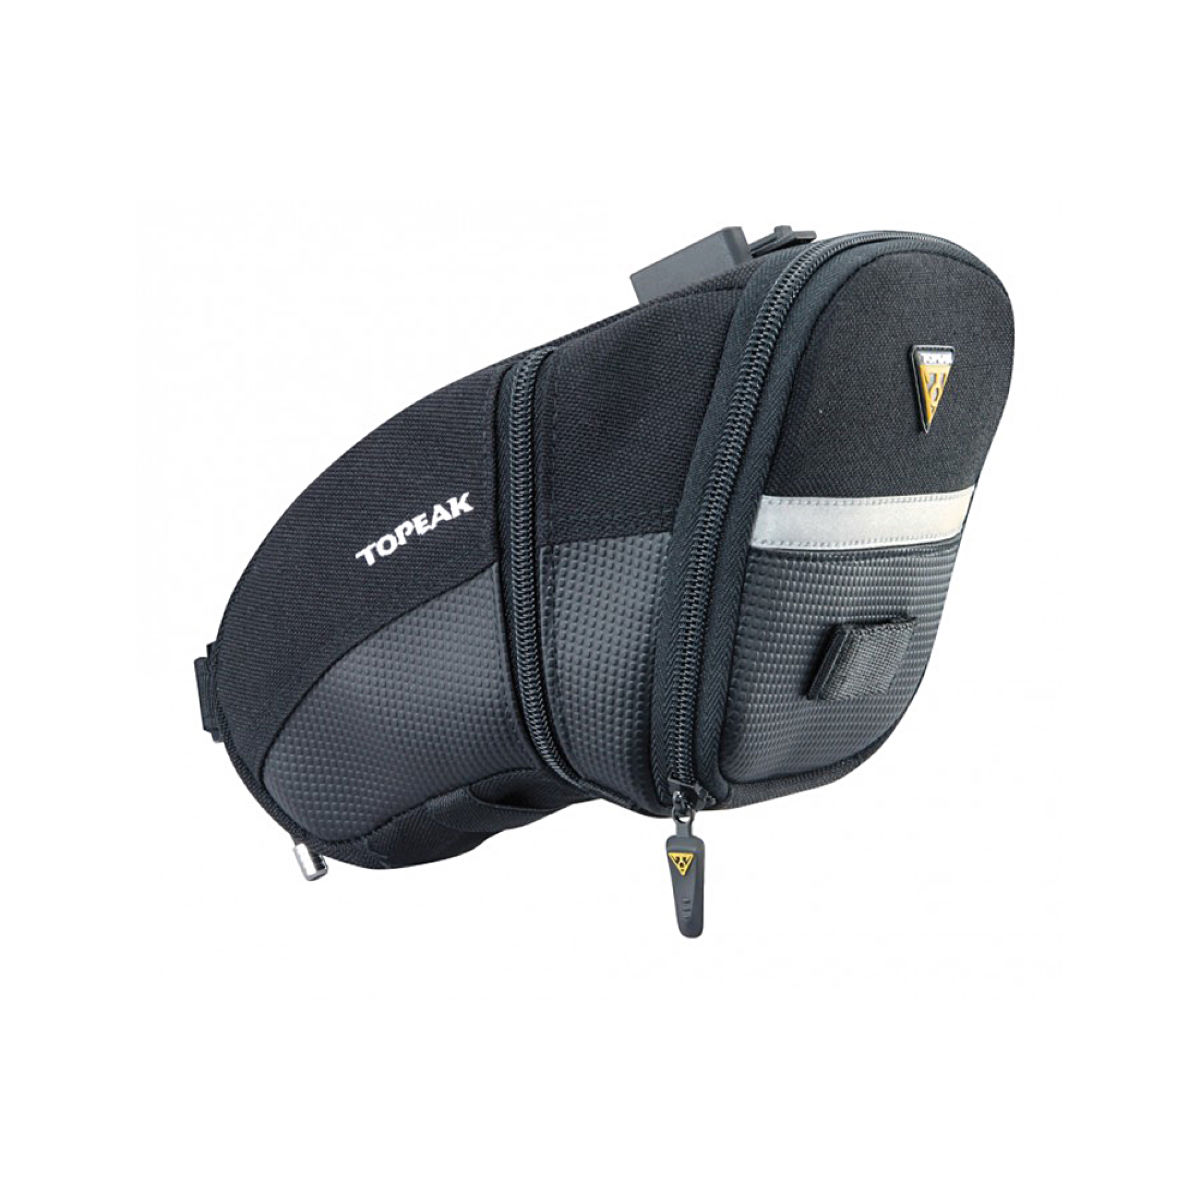 Sacoche de selle Topeak Aero Wedge (fixation clip-on, taille L) - XS